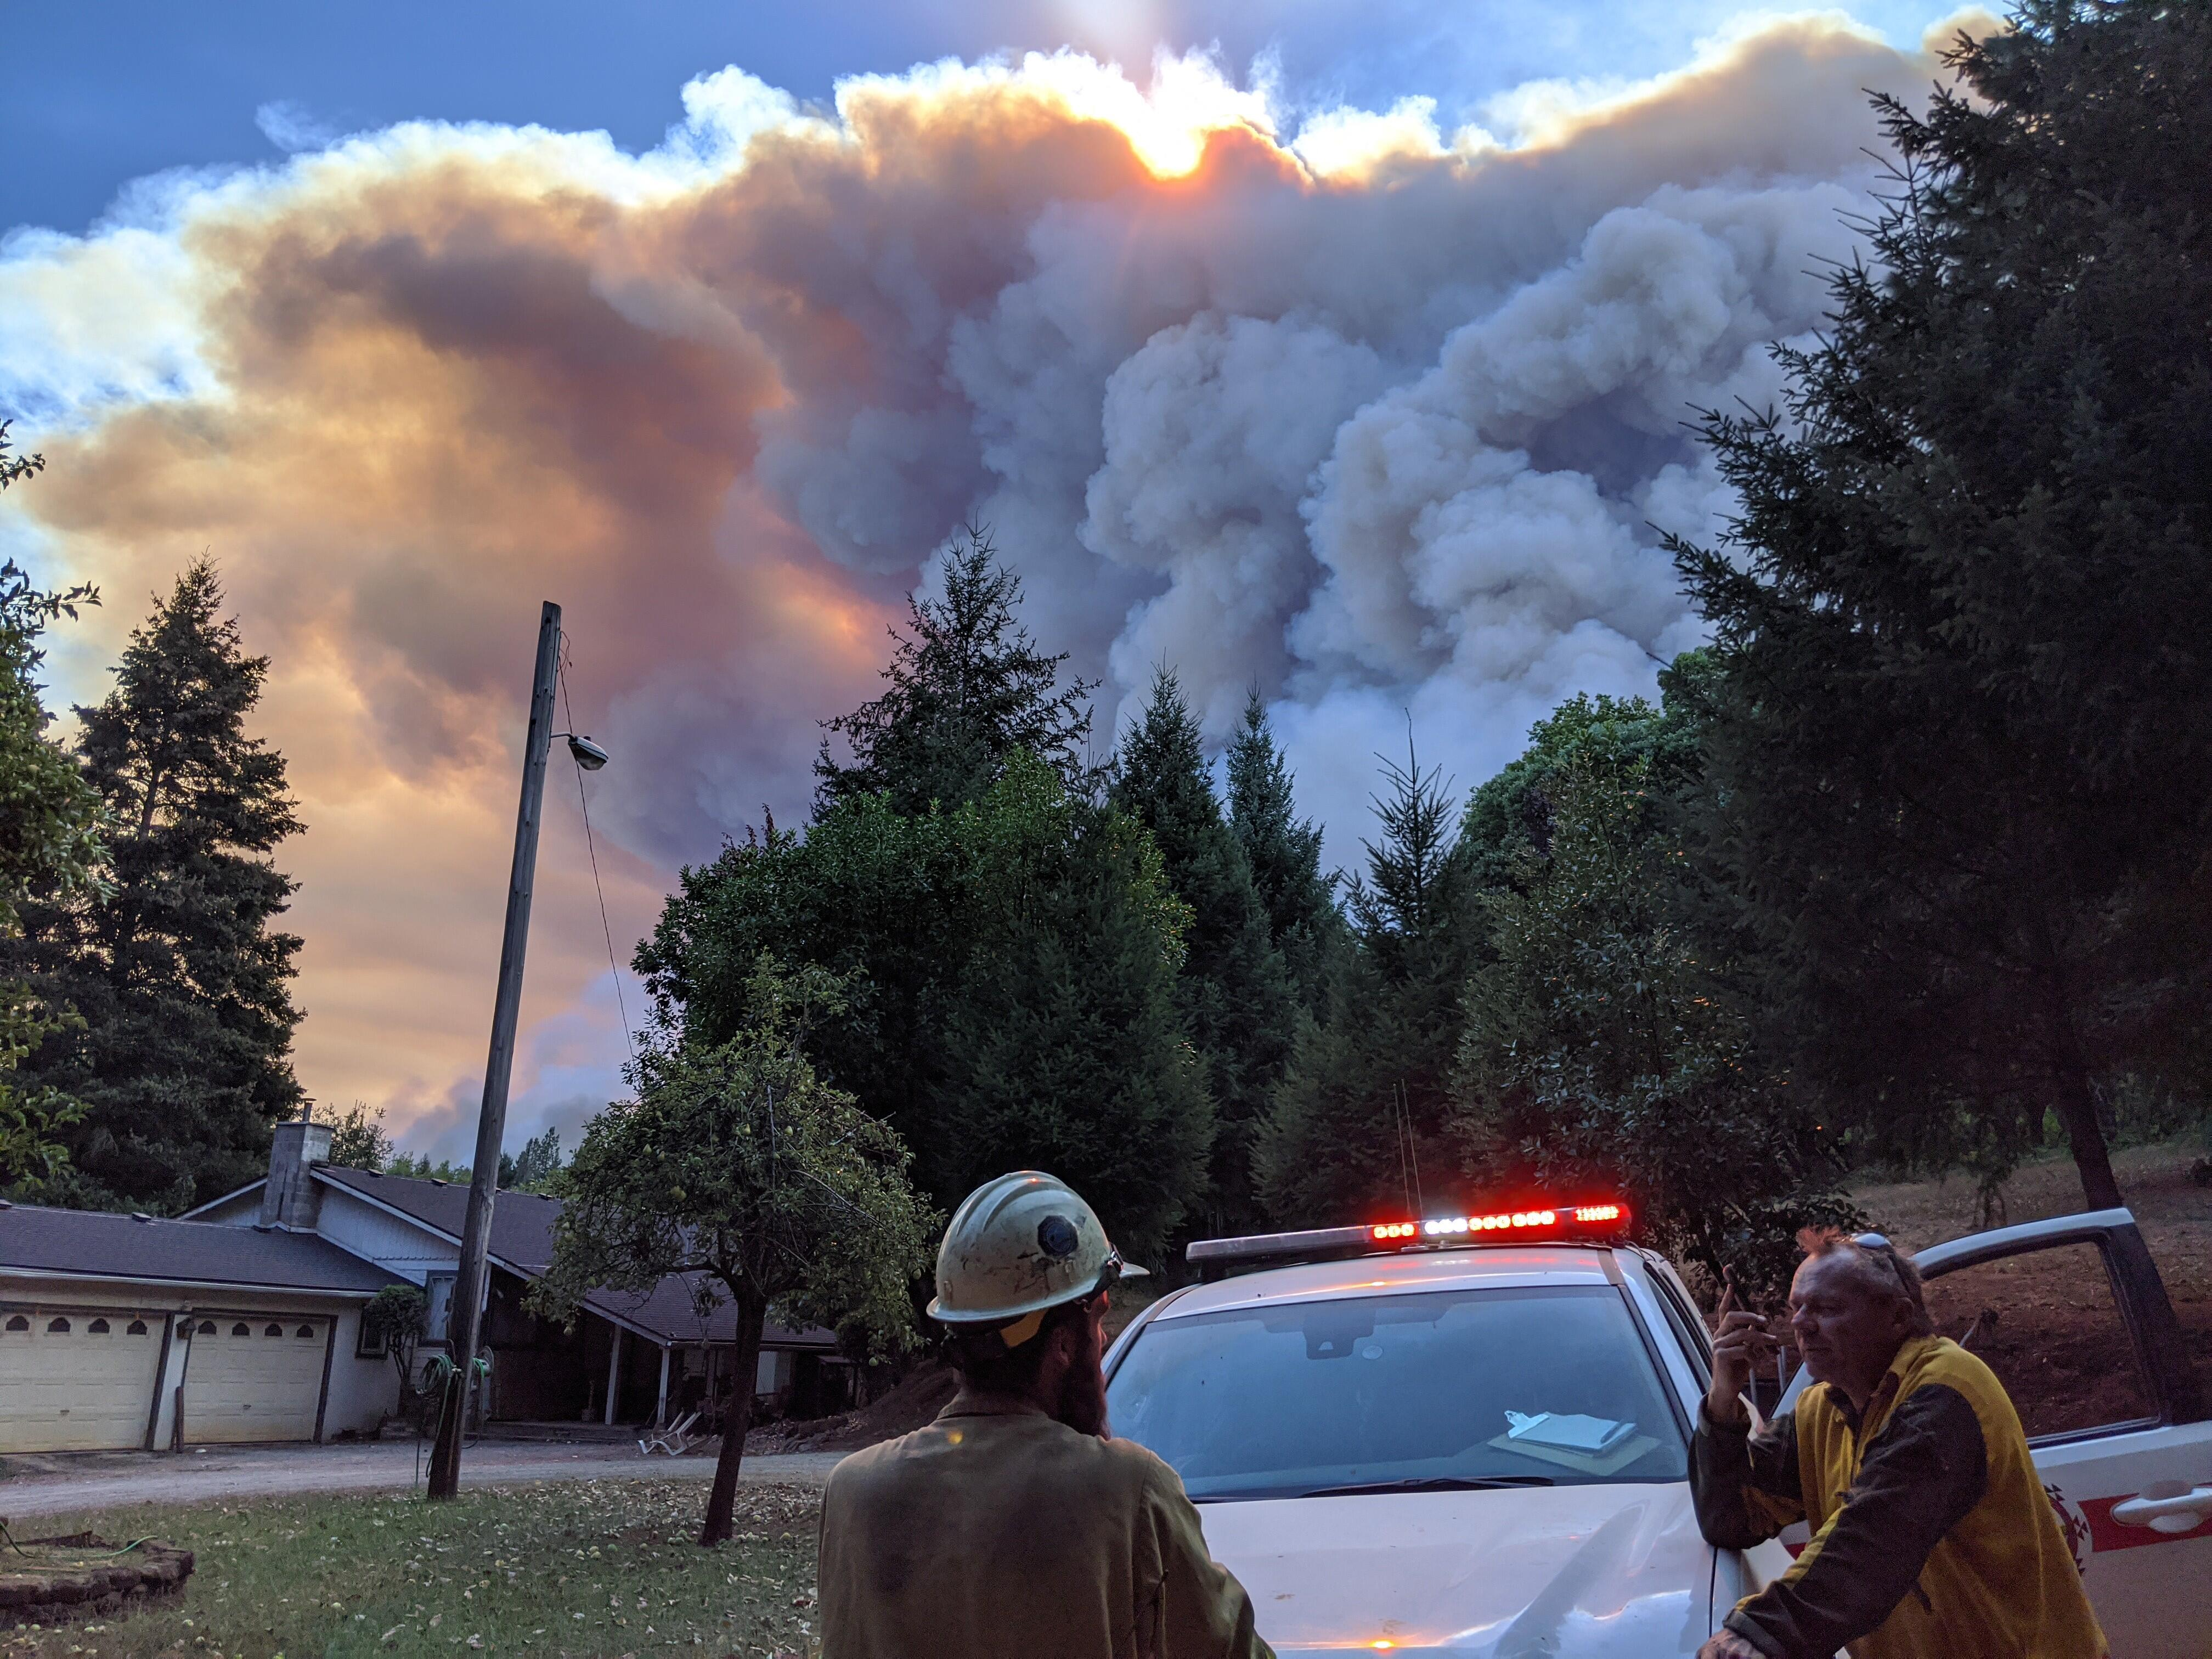 <p>Local authorities respond to the 2020 Slater fire in Happy Camp,  California.</p>